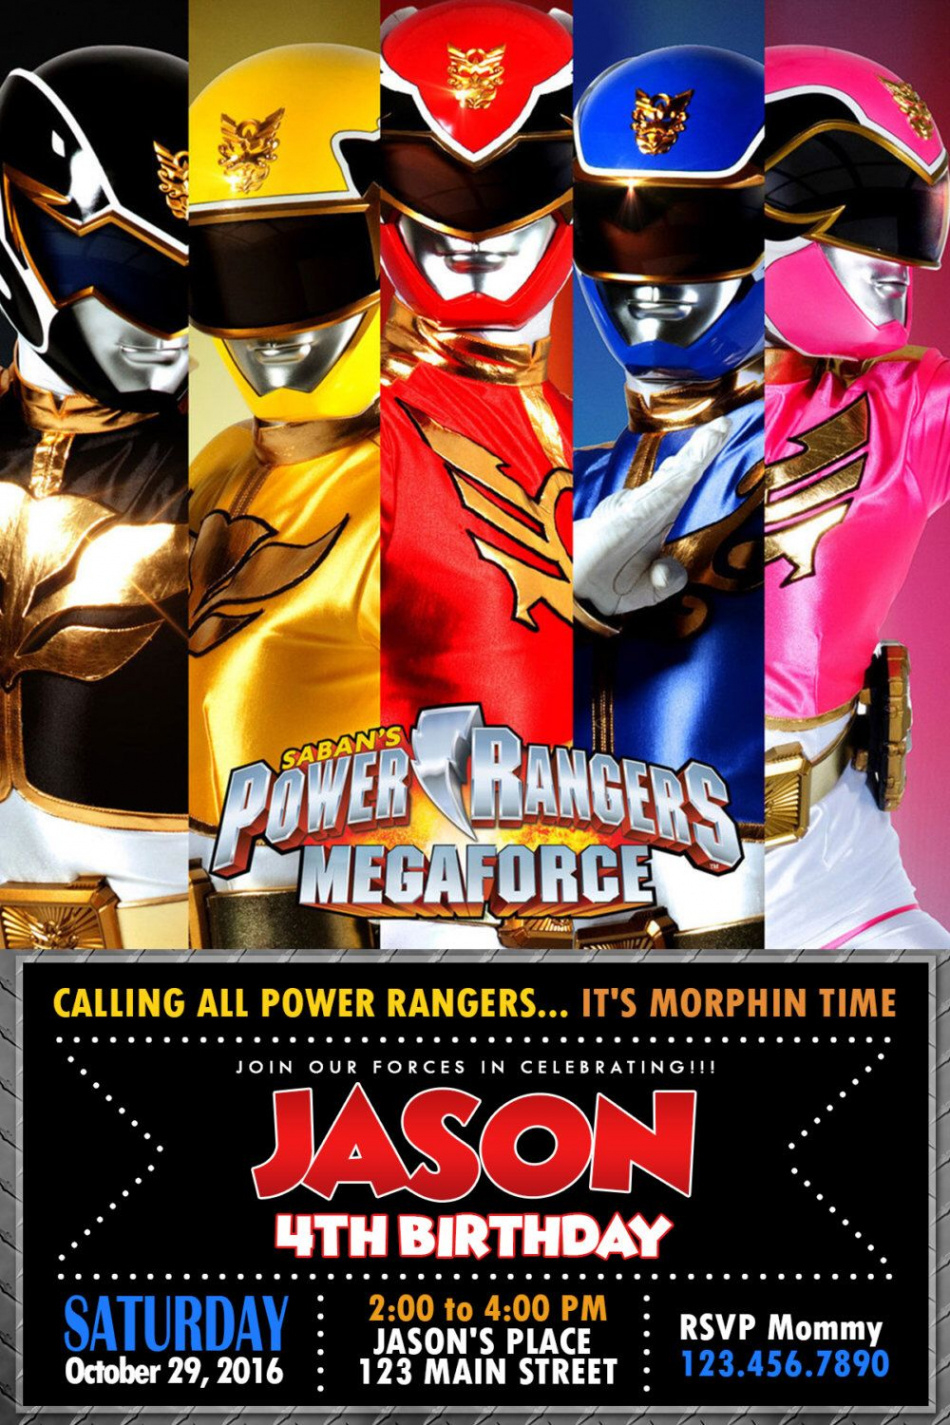 Luxury Free Printable Power Ranger Birthday Invitations - Free Printable Power Ranger Birthday Invitations